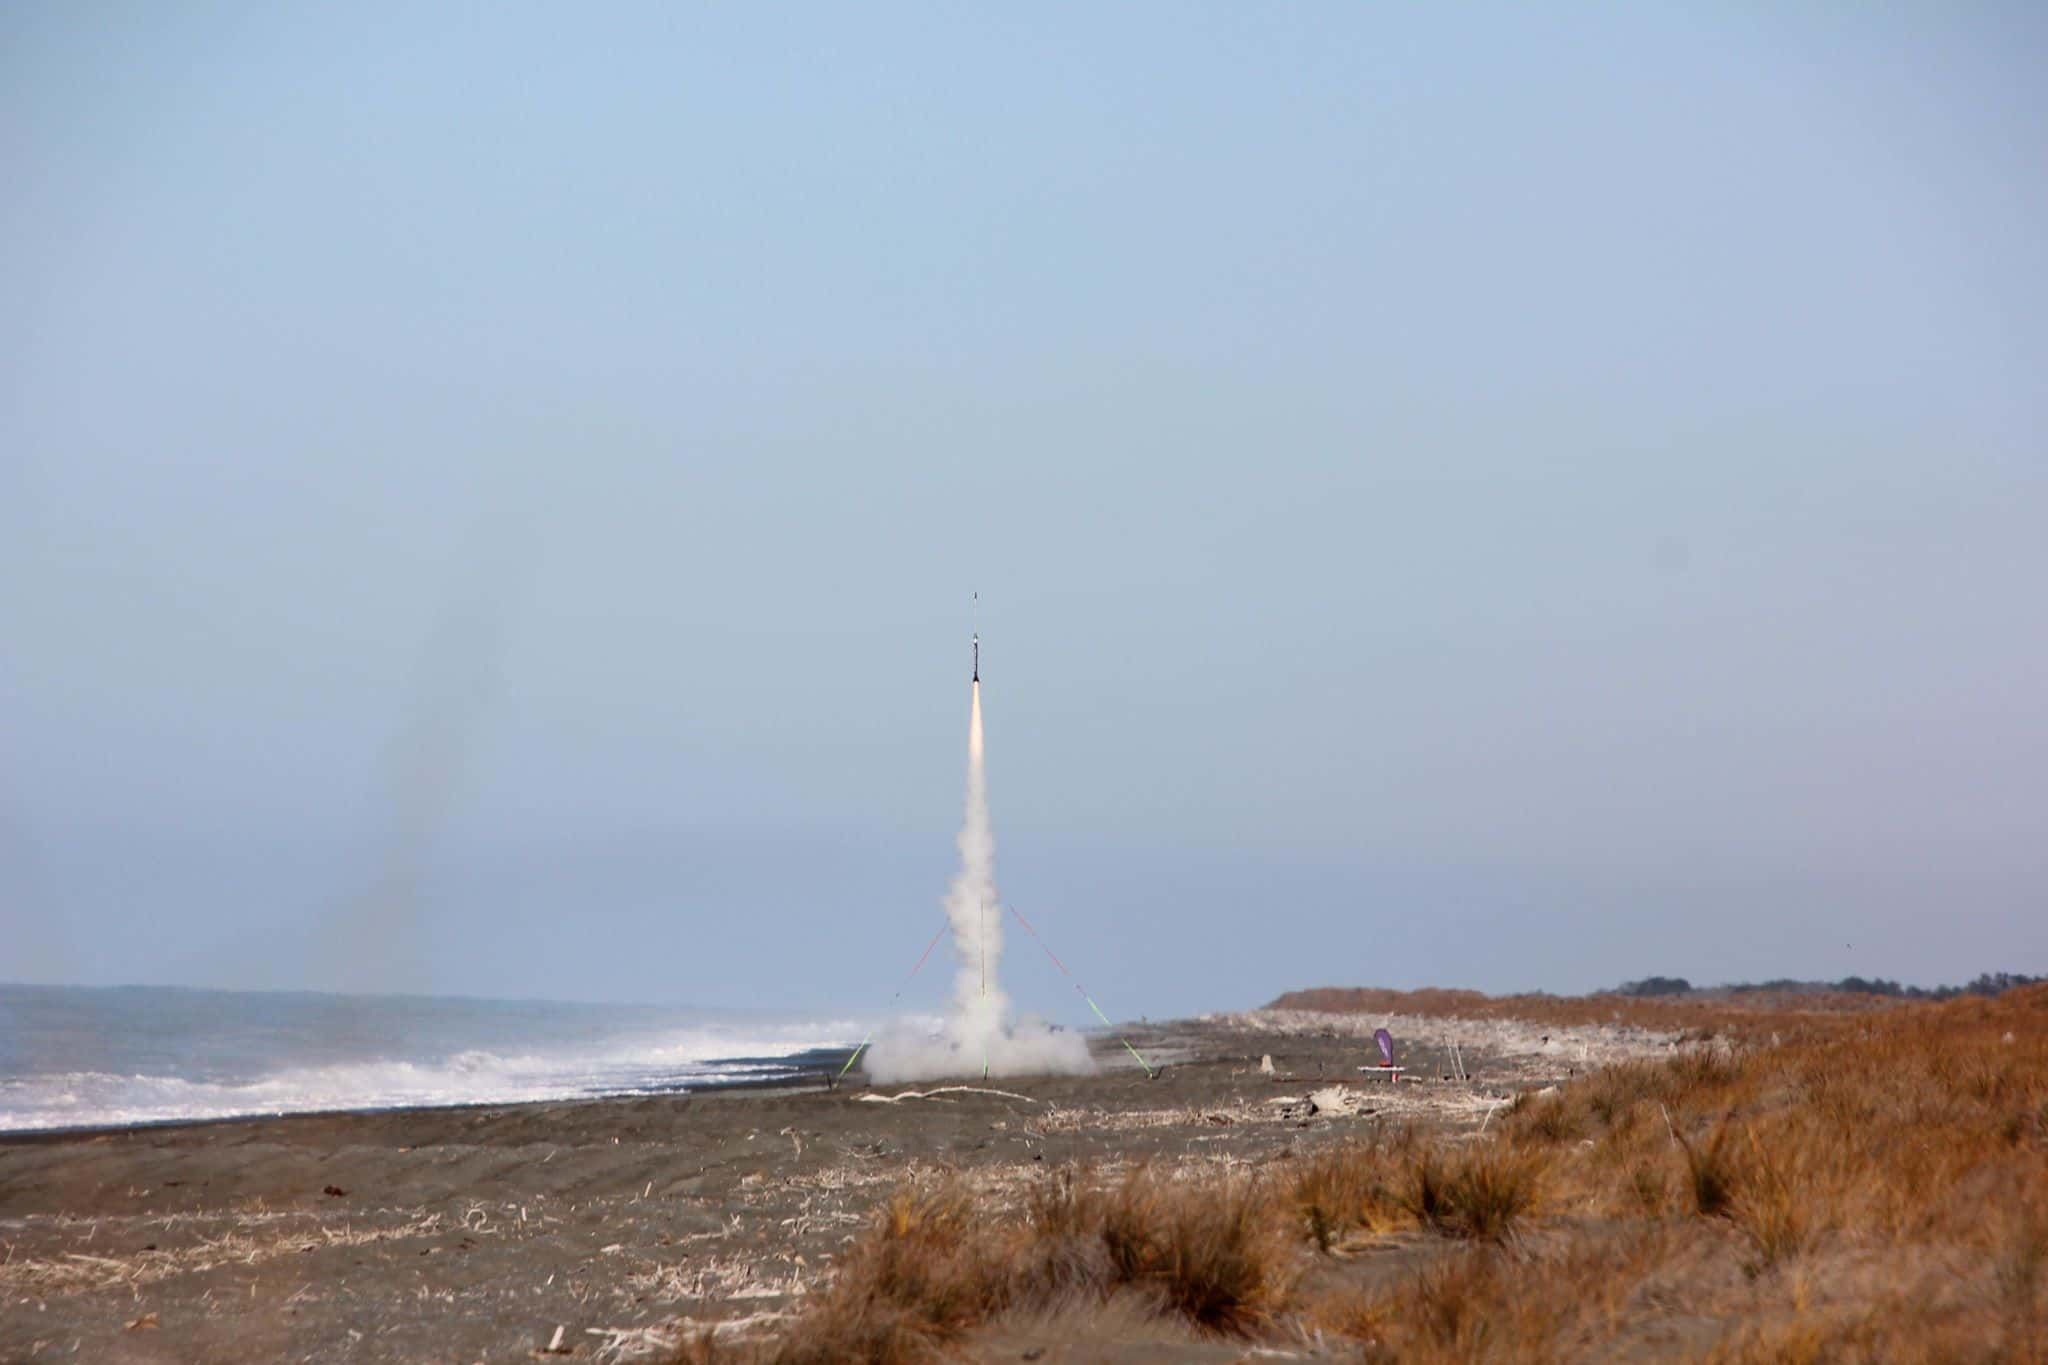 UCA rocket launch from a beach